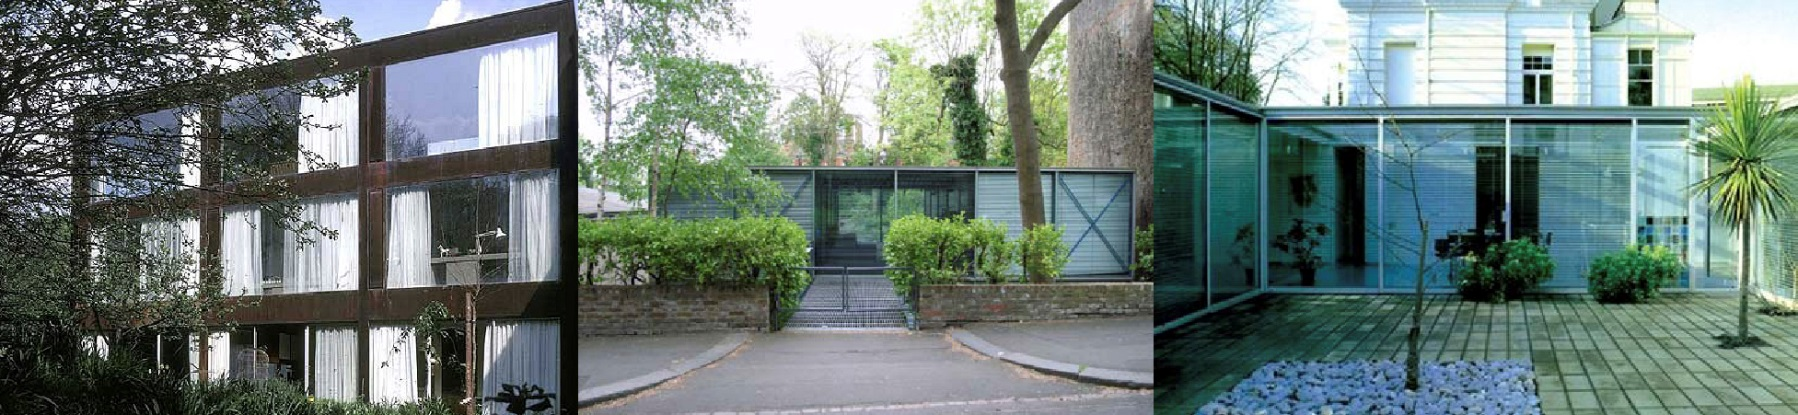 highgate mature singles Southwood lane london n6  a single bedroom / study,  and these now form a very attractive and sizeable communal space with splendid mature trees,.